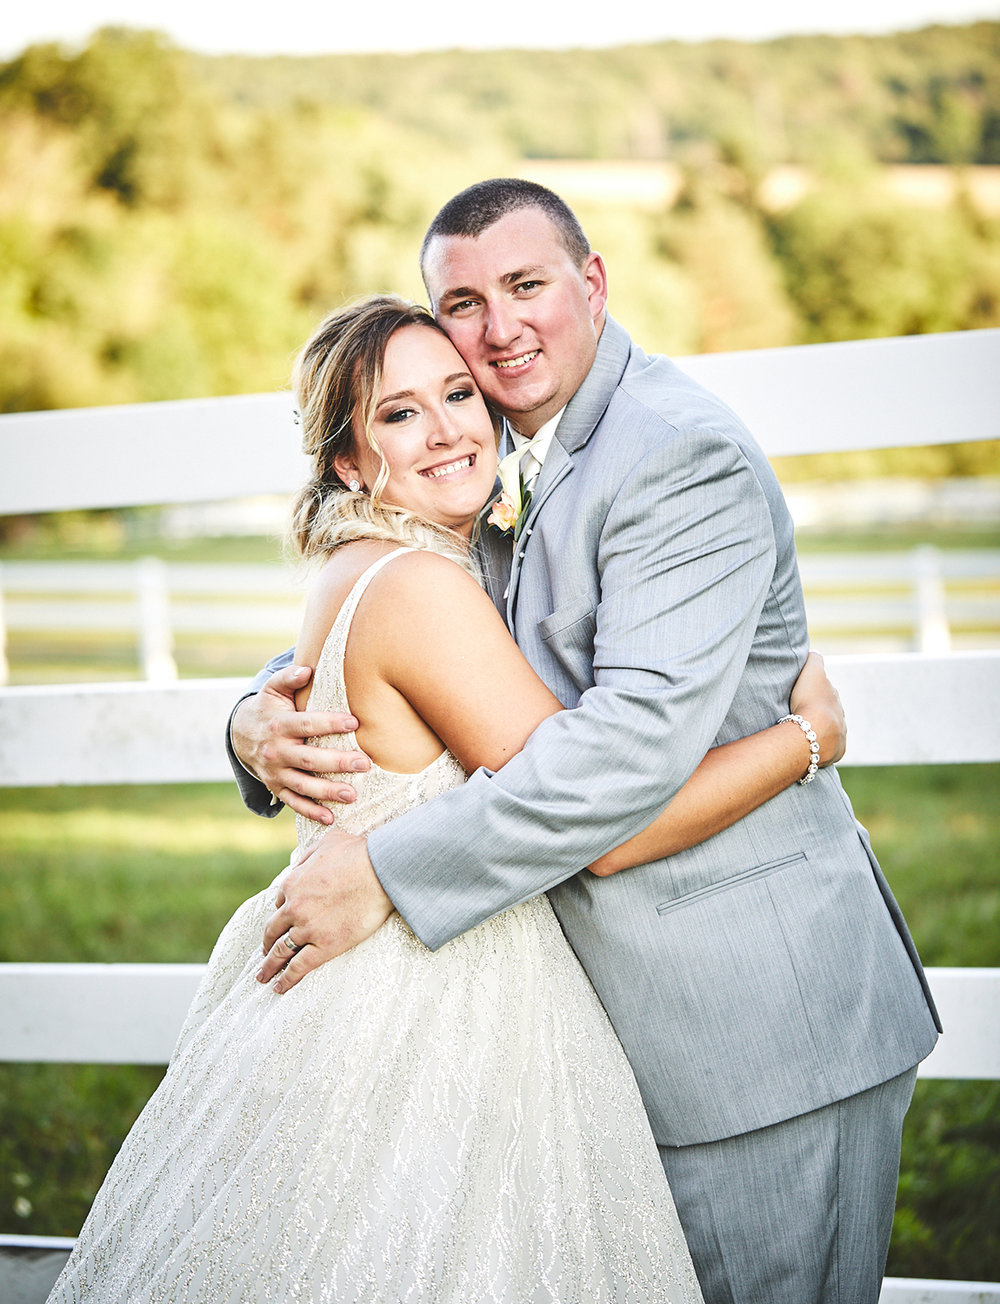 180811_RosebudEstatesWeddingPhotography_WesternNYWeddingPhotographer_By_BriJohnsonWeddings_0157.jpg